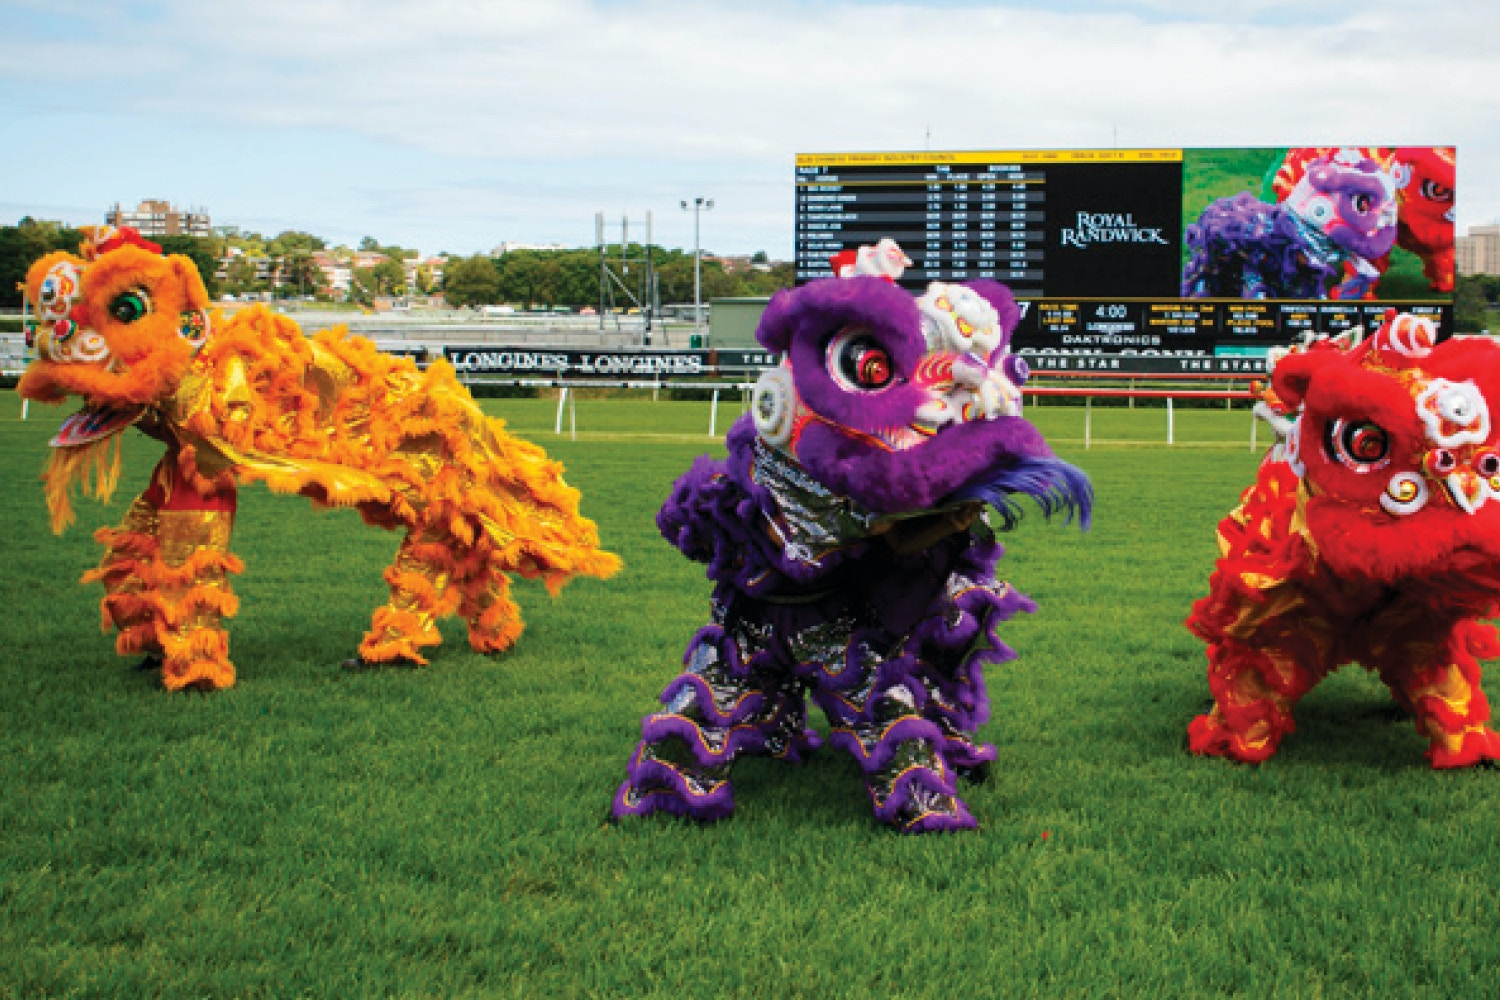 The Star Chinese Festival of Racing - A celebration of culture, entertainment and hospitality